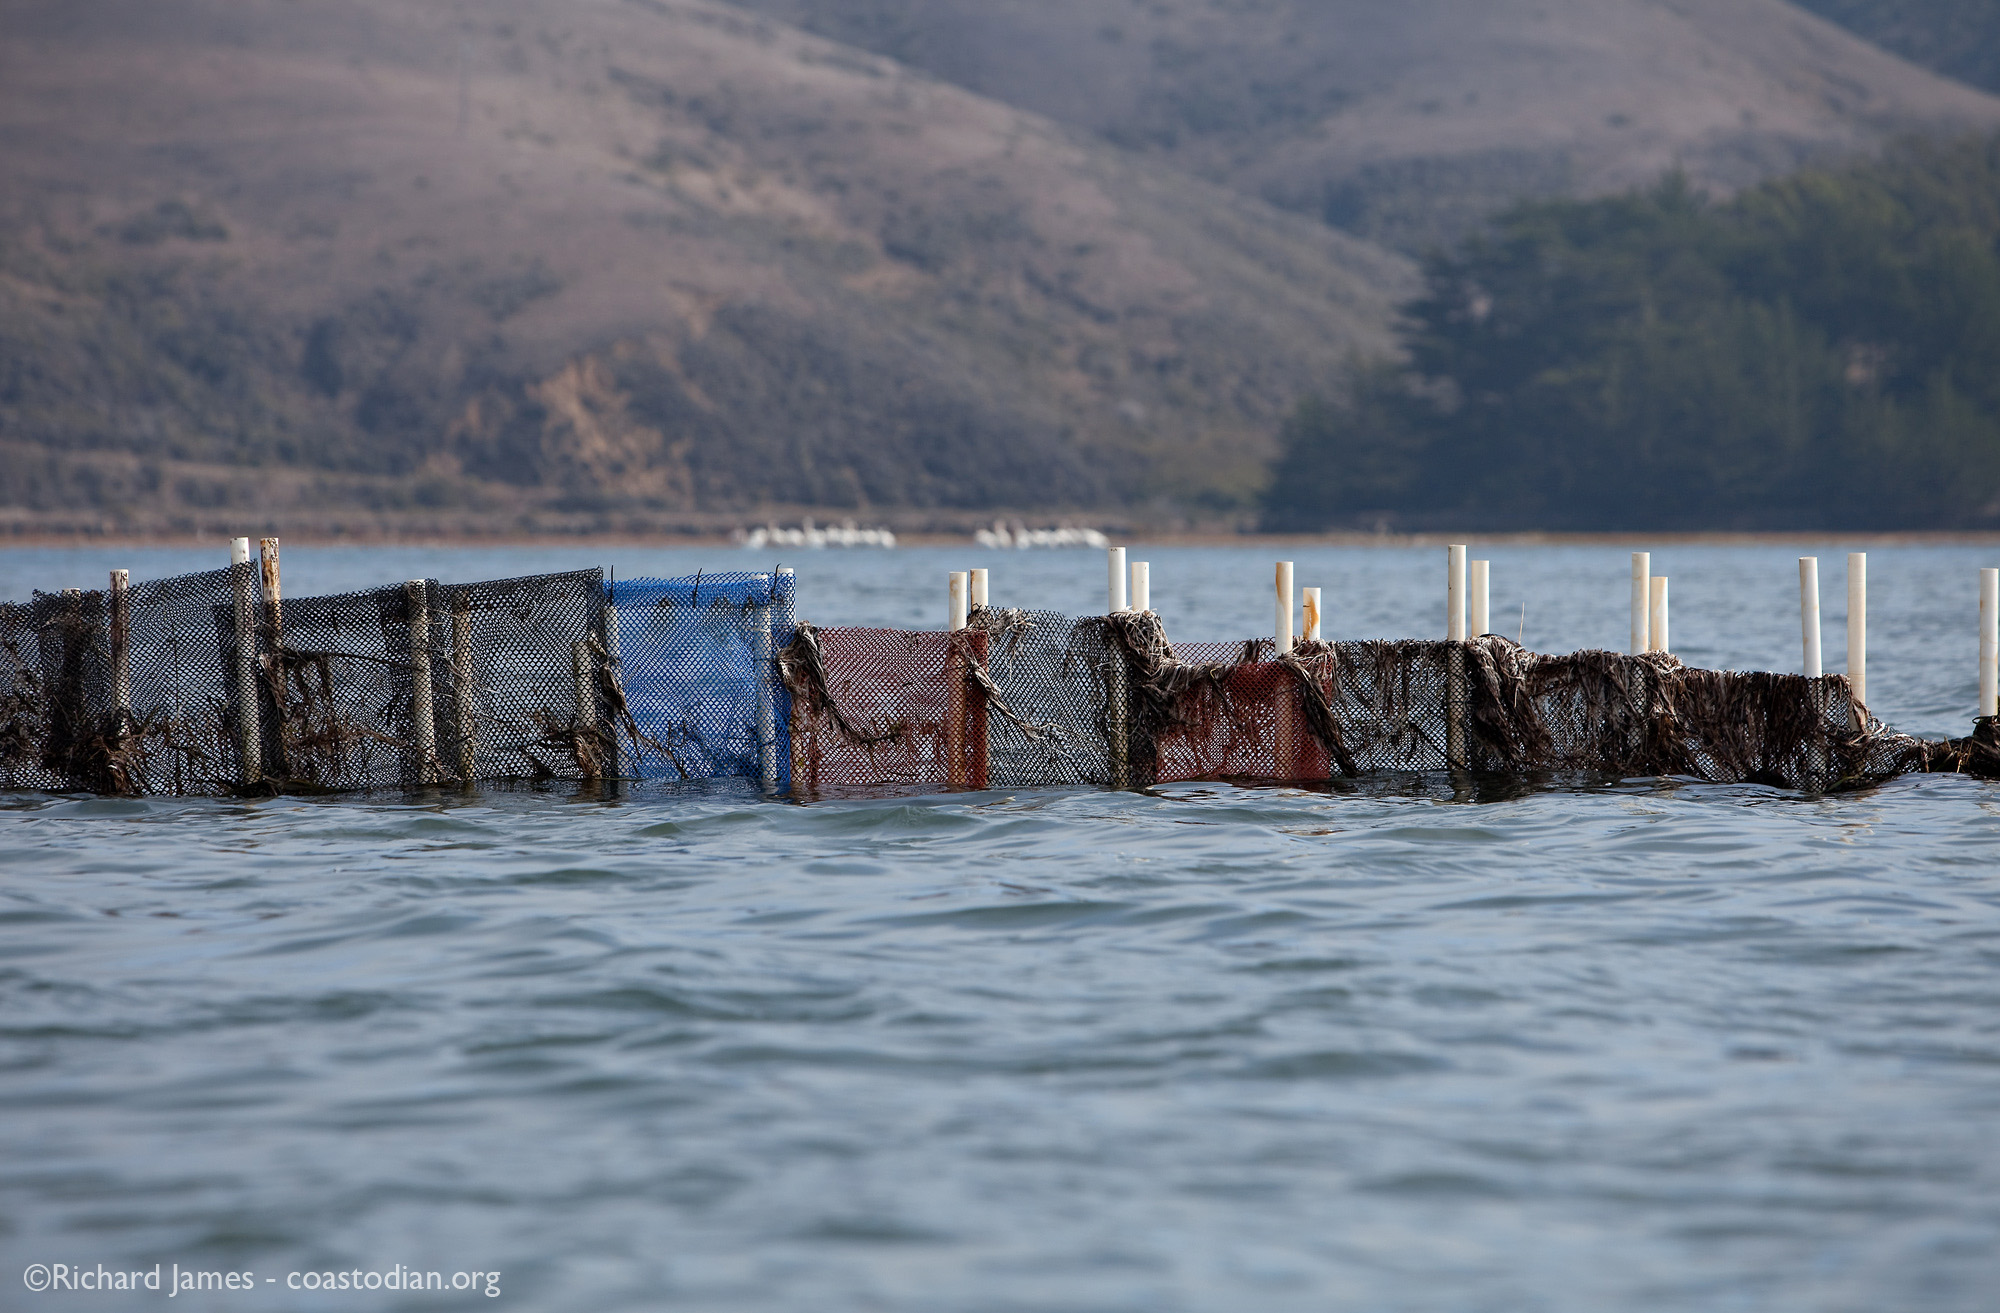 Human-built structure trying to tell the tide where to go with polyethylene bags fastened to polyvinyl chloride (PVC) pipes with nylon cable-ties. Tomales Bay - The white objects in the background are American white pelicans made of feathers, flesh and bone.